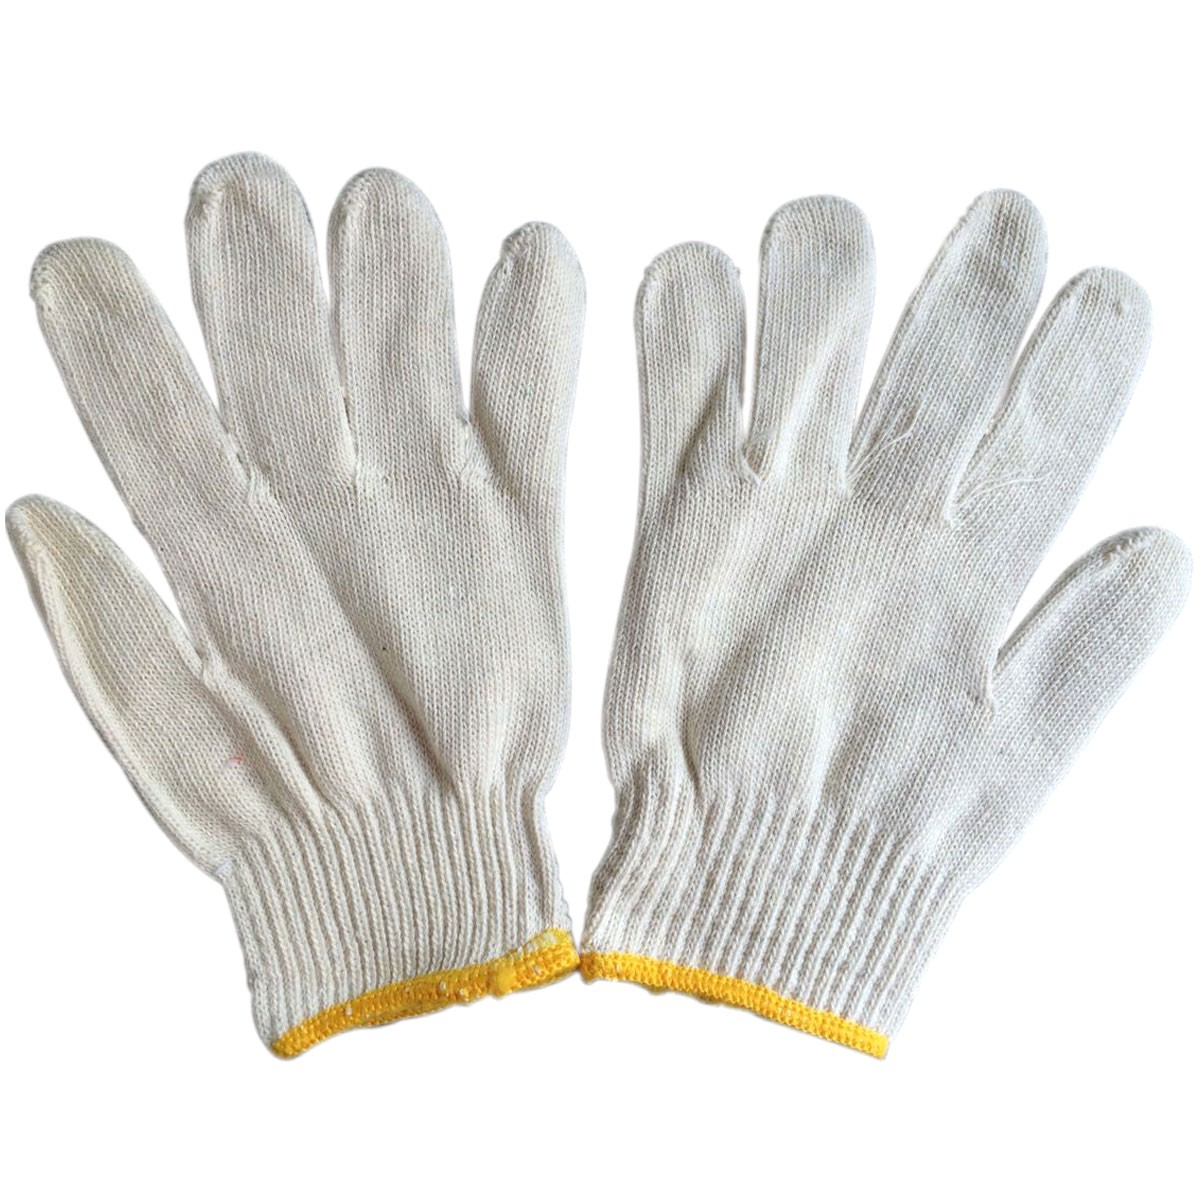 Natural White Cotton Work Gloves, 45g/pair, 12 pairs/pack (DK-OD012)